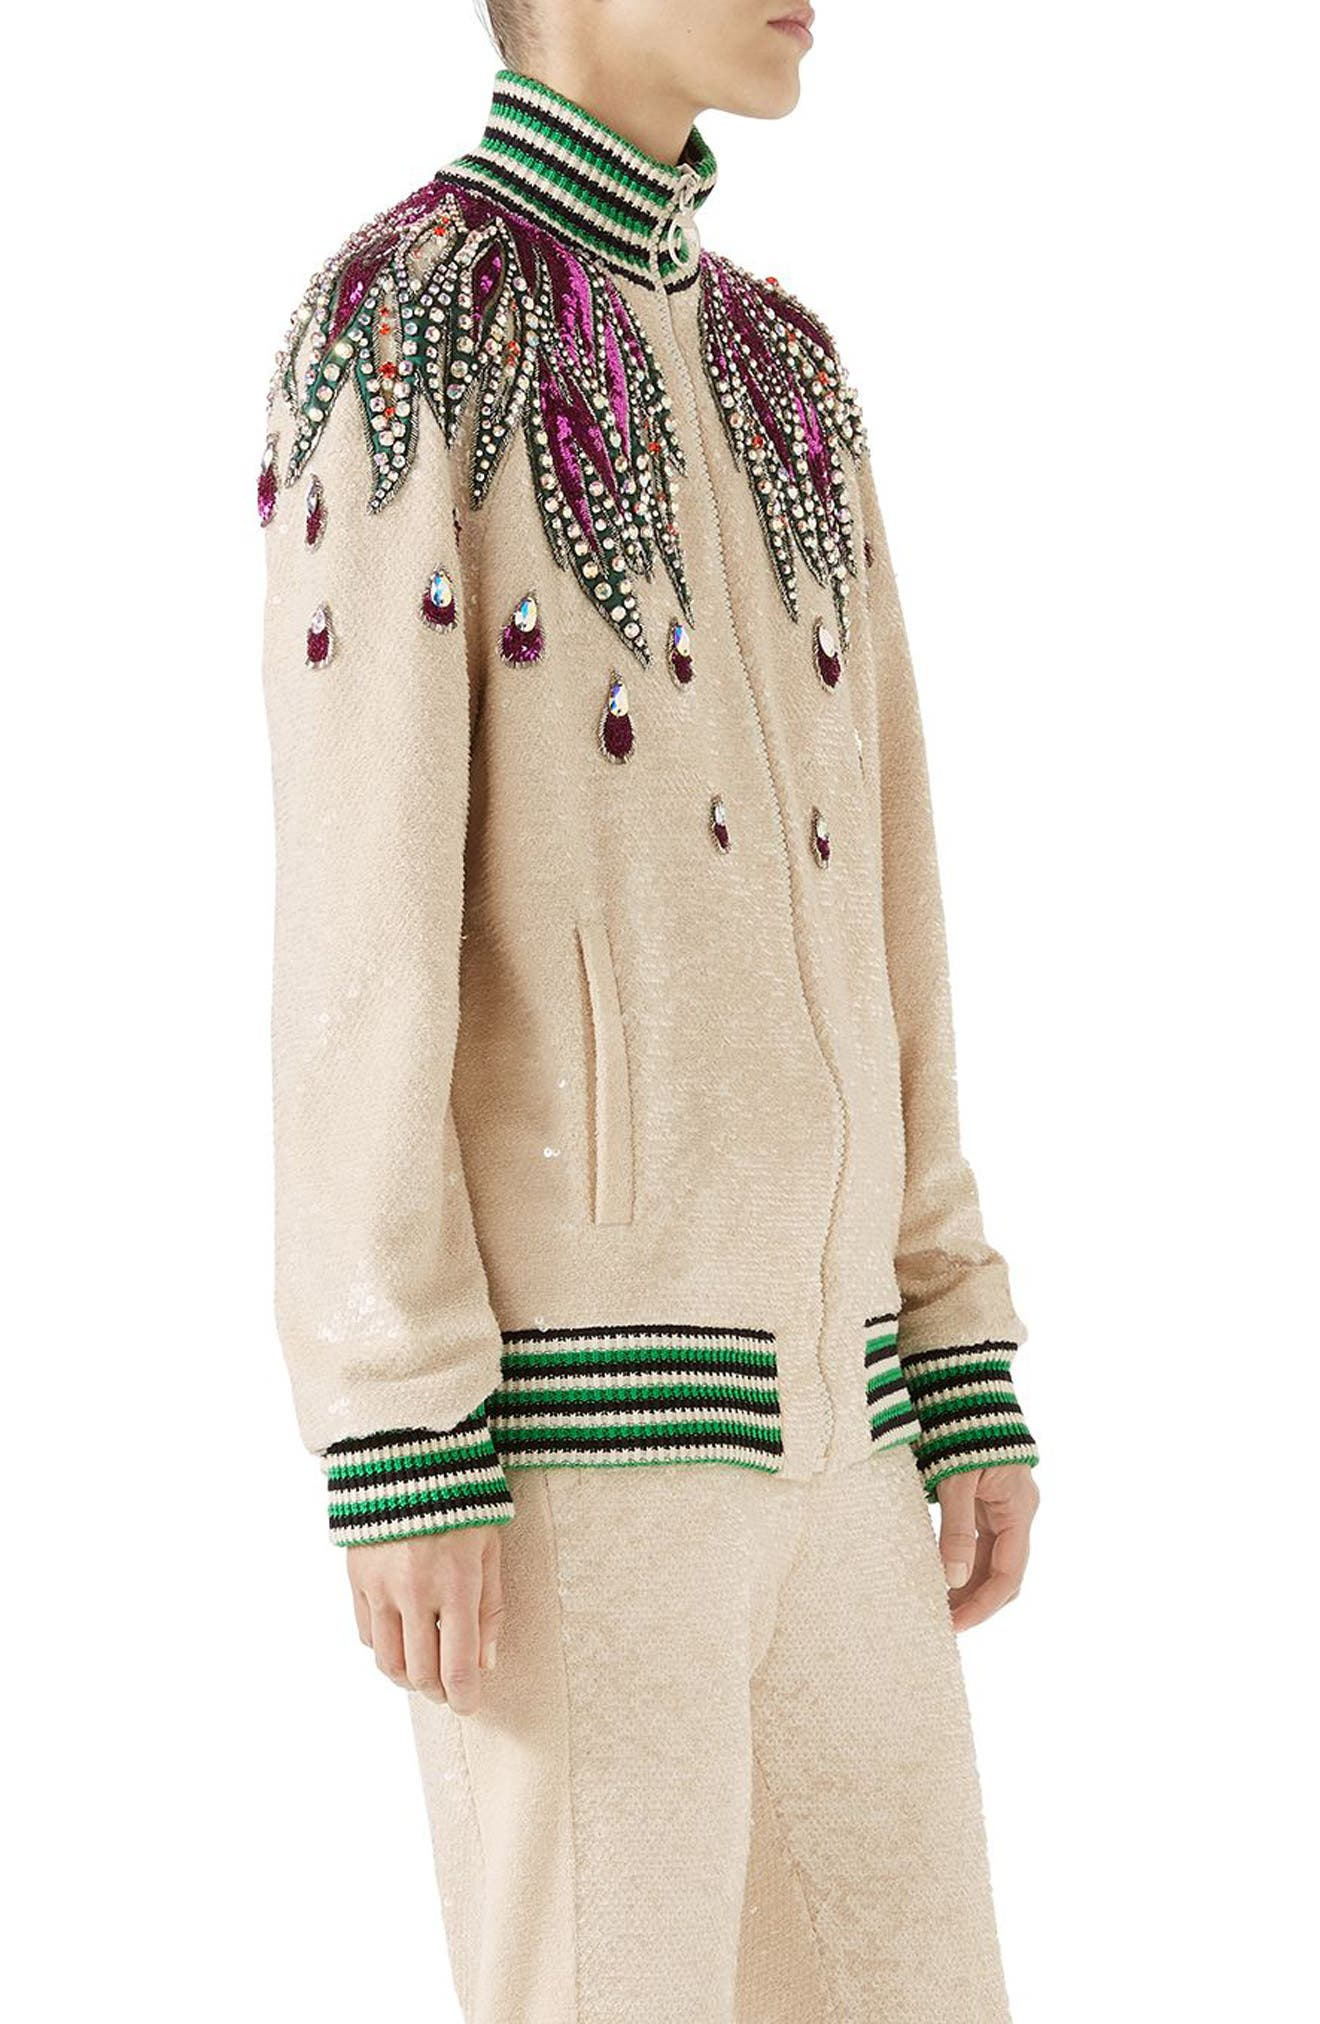 Embellished Track Jacket,                             Alternate thumbnail 3, color,                             Gardenia/ Multicolor